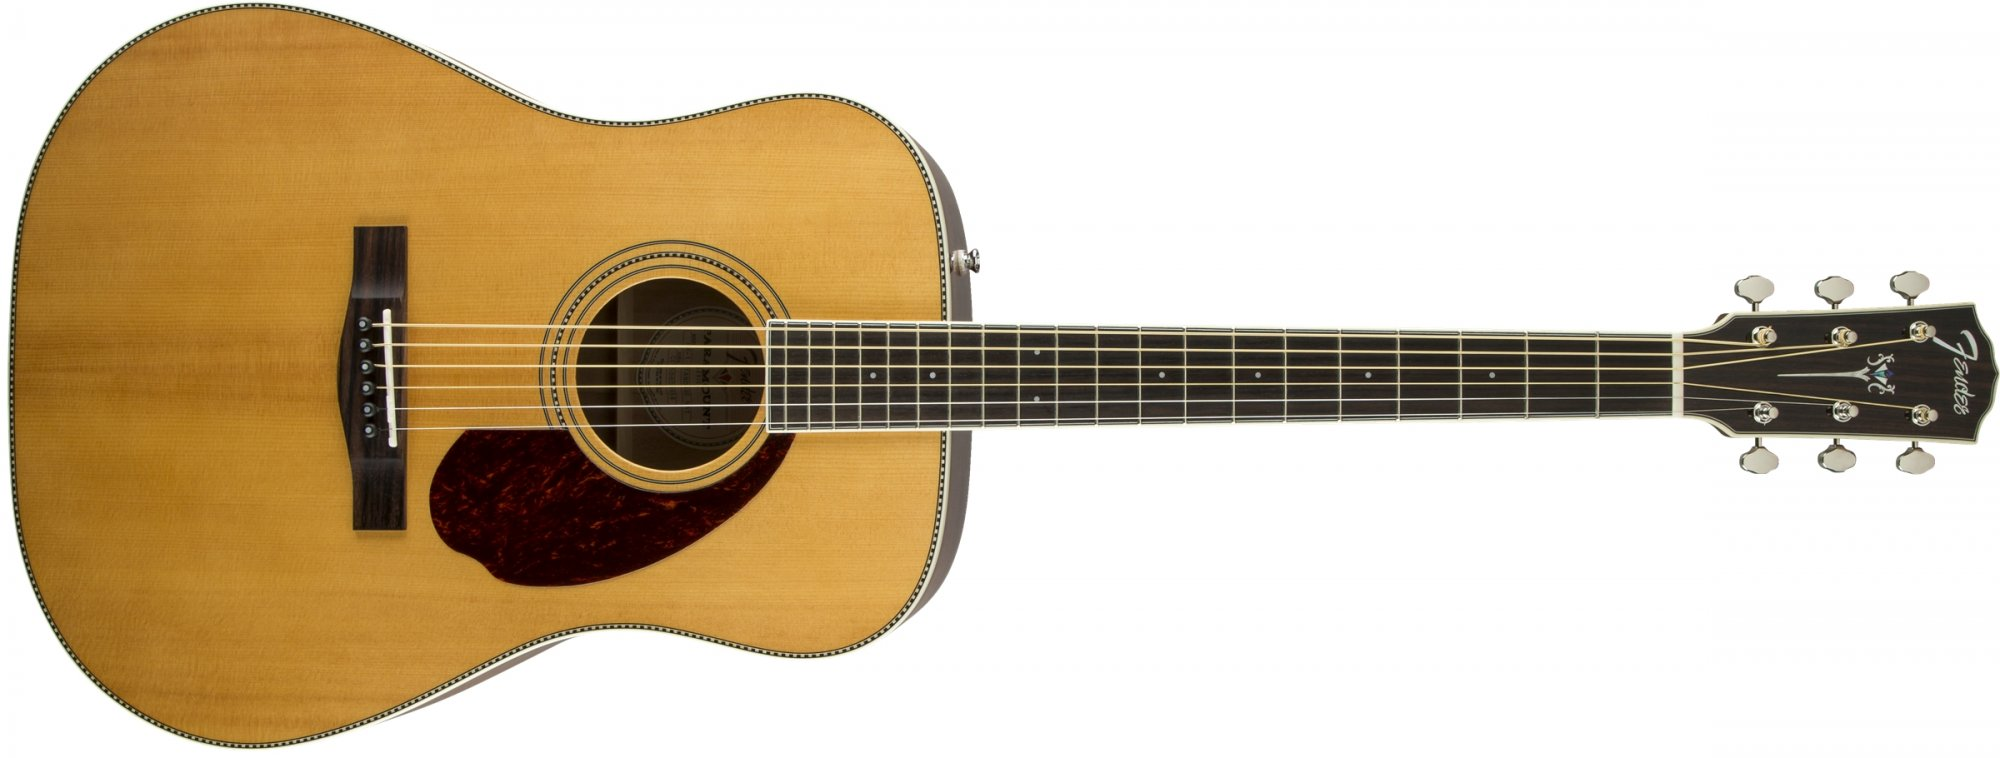 Fender PM-1 Paramount Standard Acoustic Electric Guitar, Natural